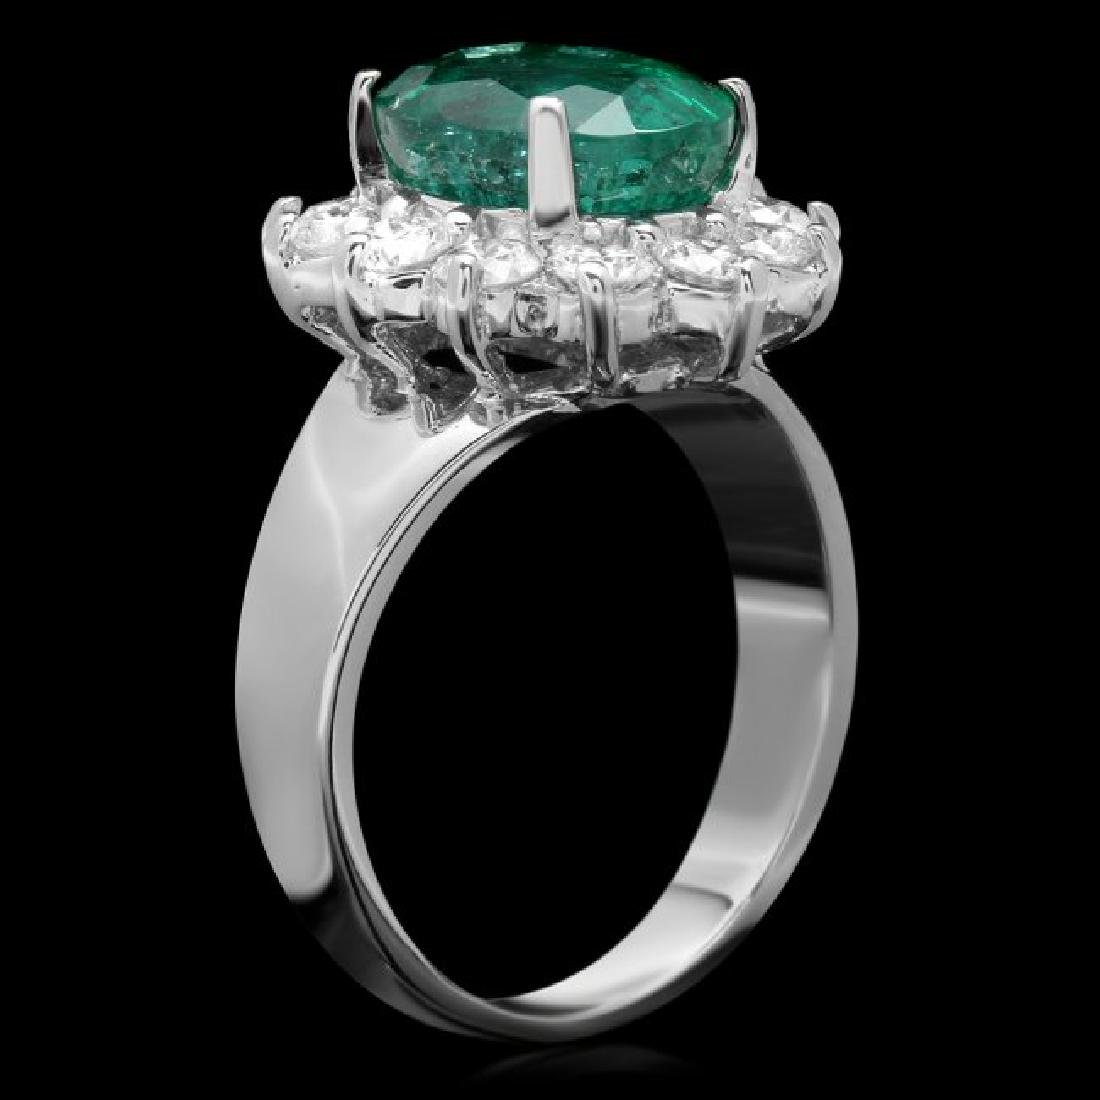 14k White Gold 3.50ct Emerald 1.10ct Diamond Ring - 2